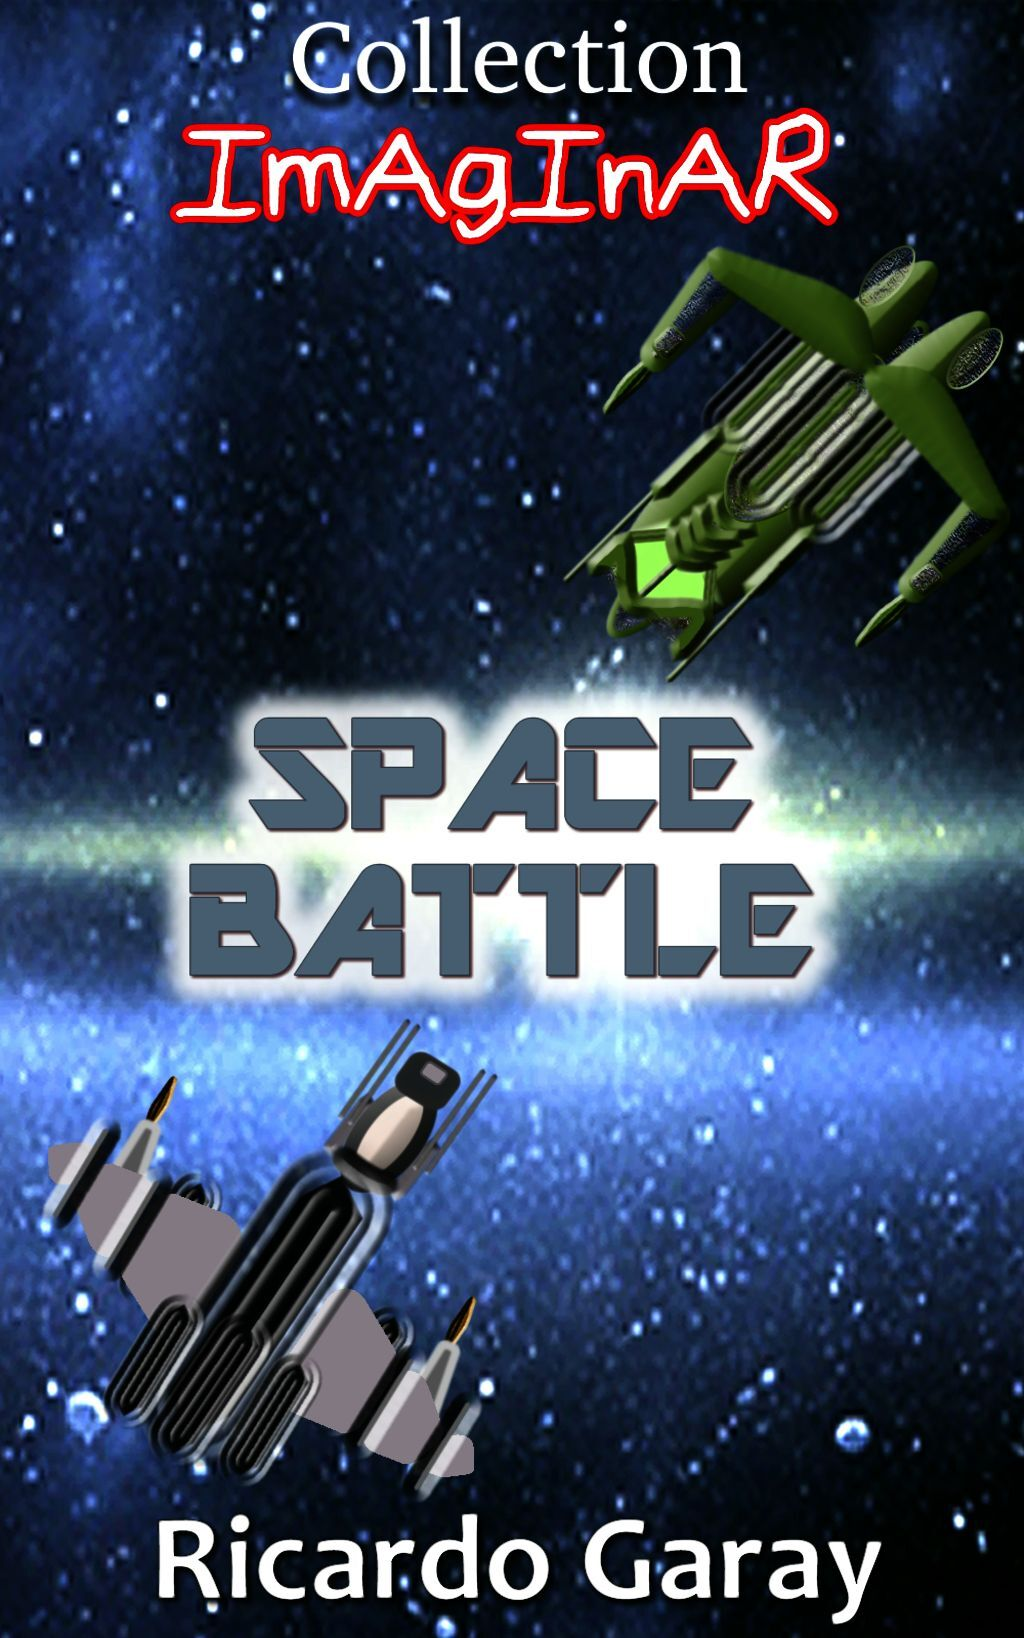 Coll. Imaginar - Space Battle